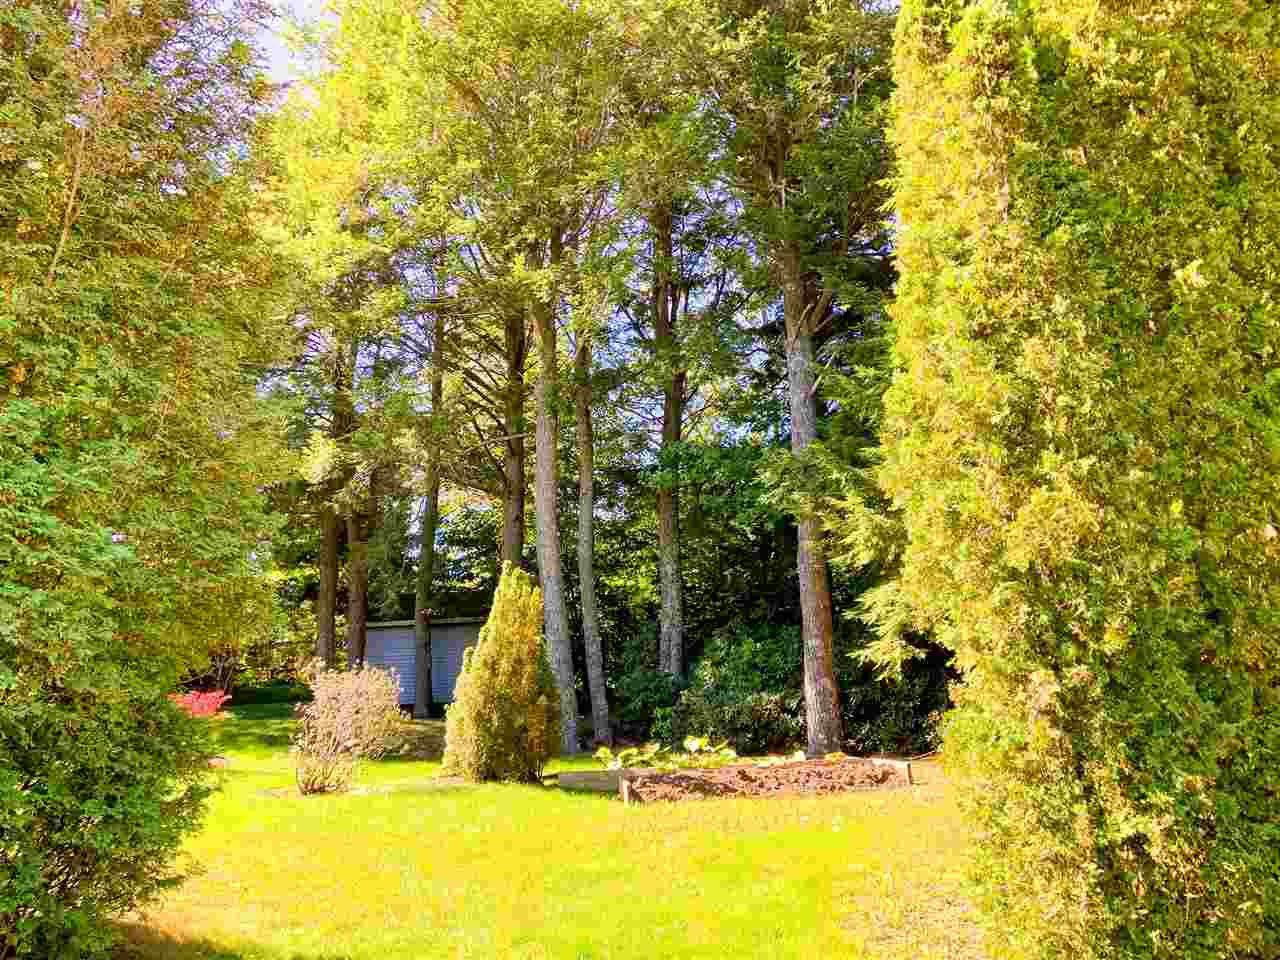 Main Photo: 69 Alicia Boulevard in Kentville: 404-Kings County Vacant Land for sale (Annapolis Valley)  : MLS®# 202019616